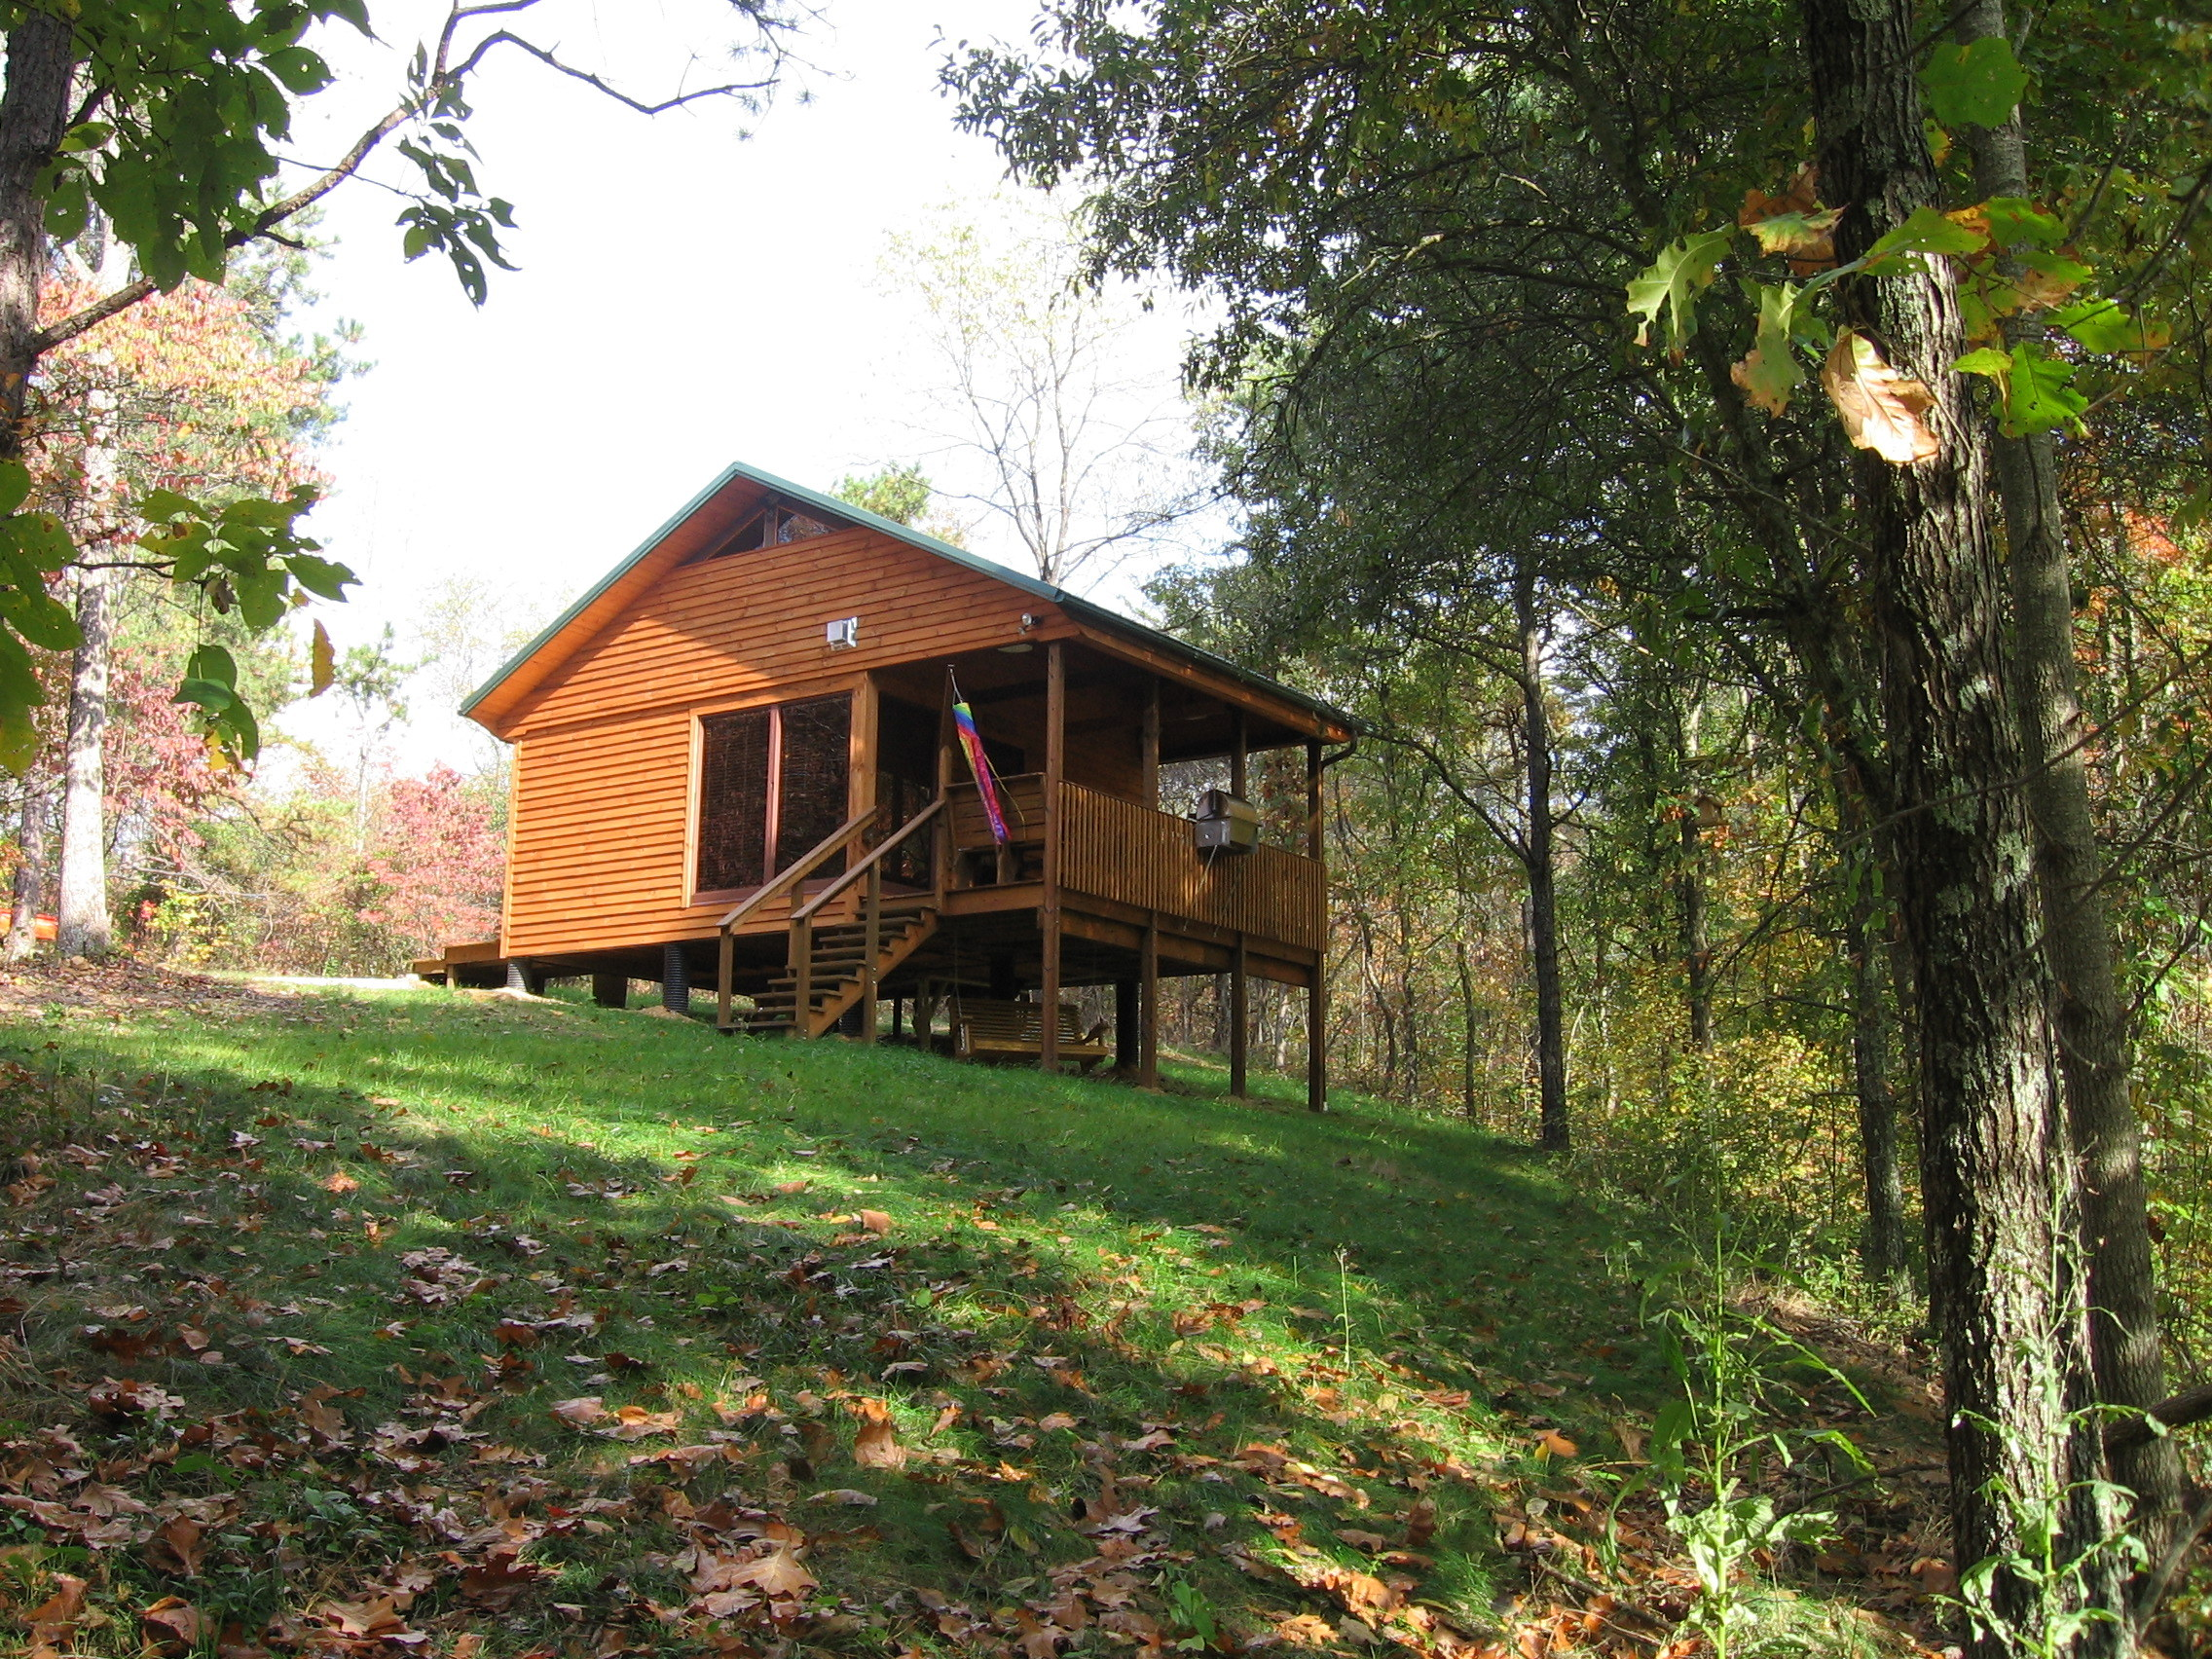 ohio cabin sale getaways vacation reviews park for hocking near in hills rentals state romantic cabins homes